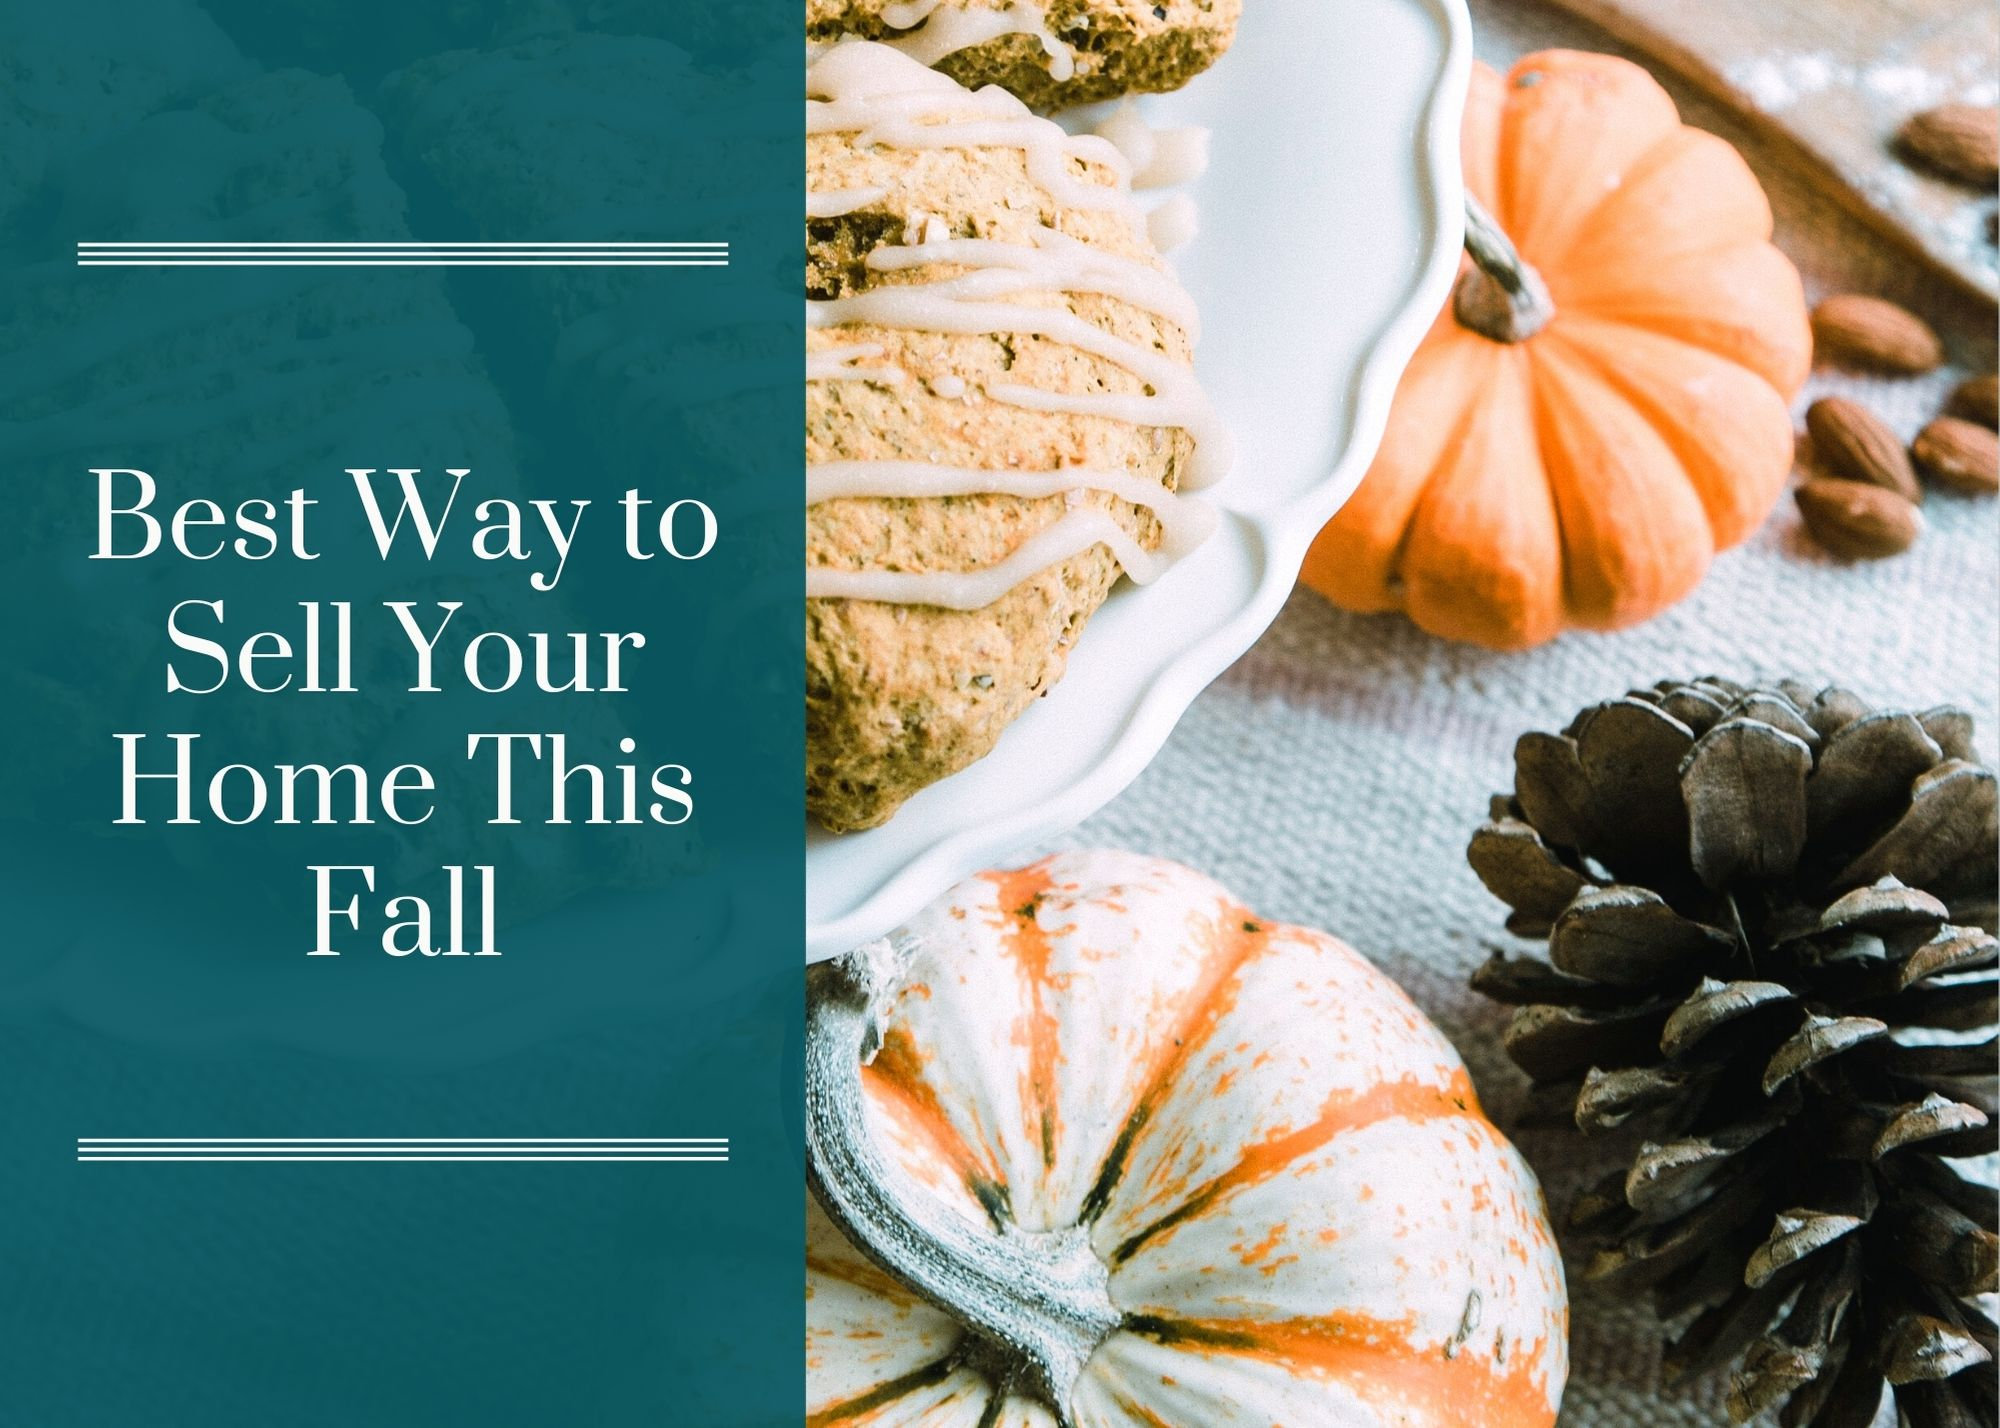 Best Way to Sell Your Home This Fall